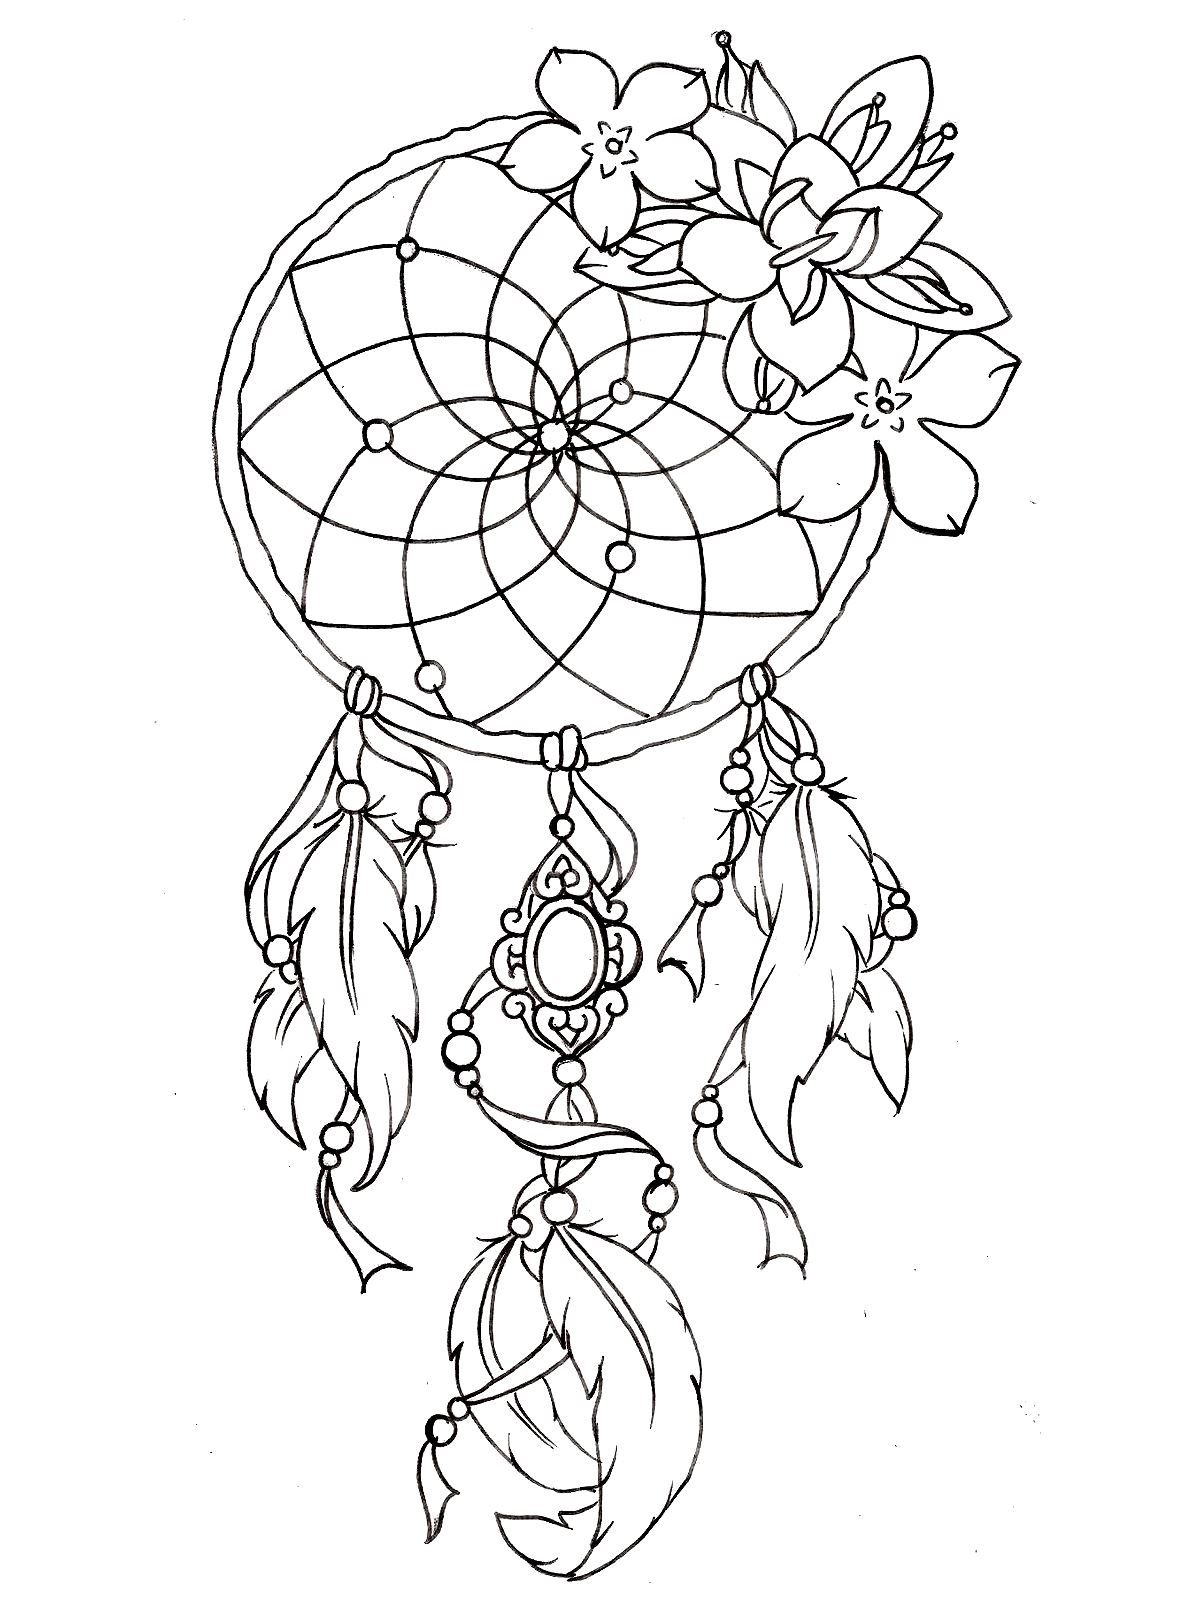 1200x1600 To Print This Free Coloring Page Dreamcatcher Tattoo